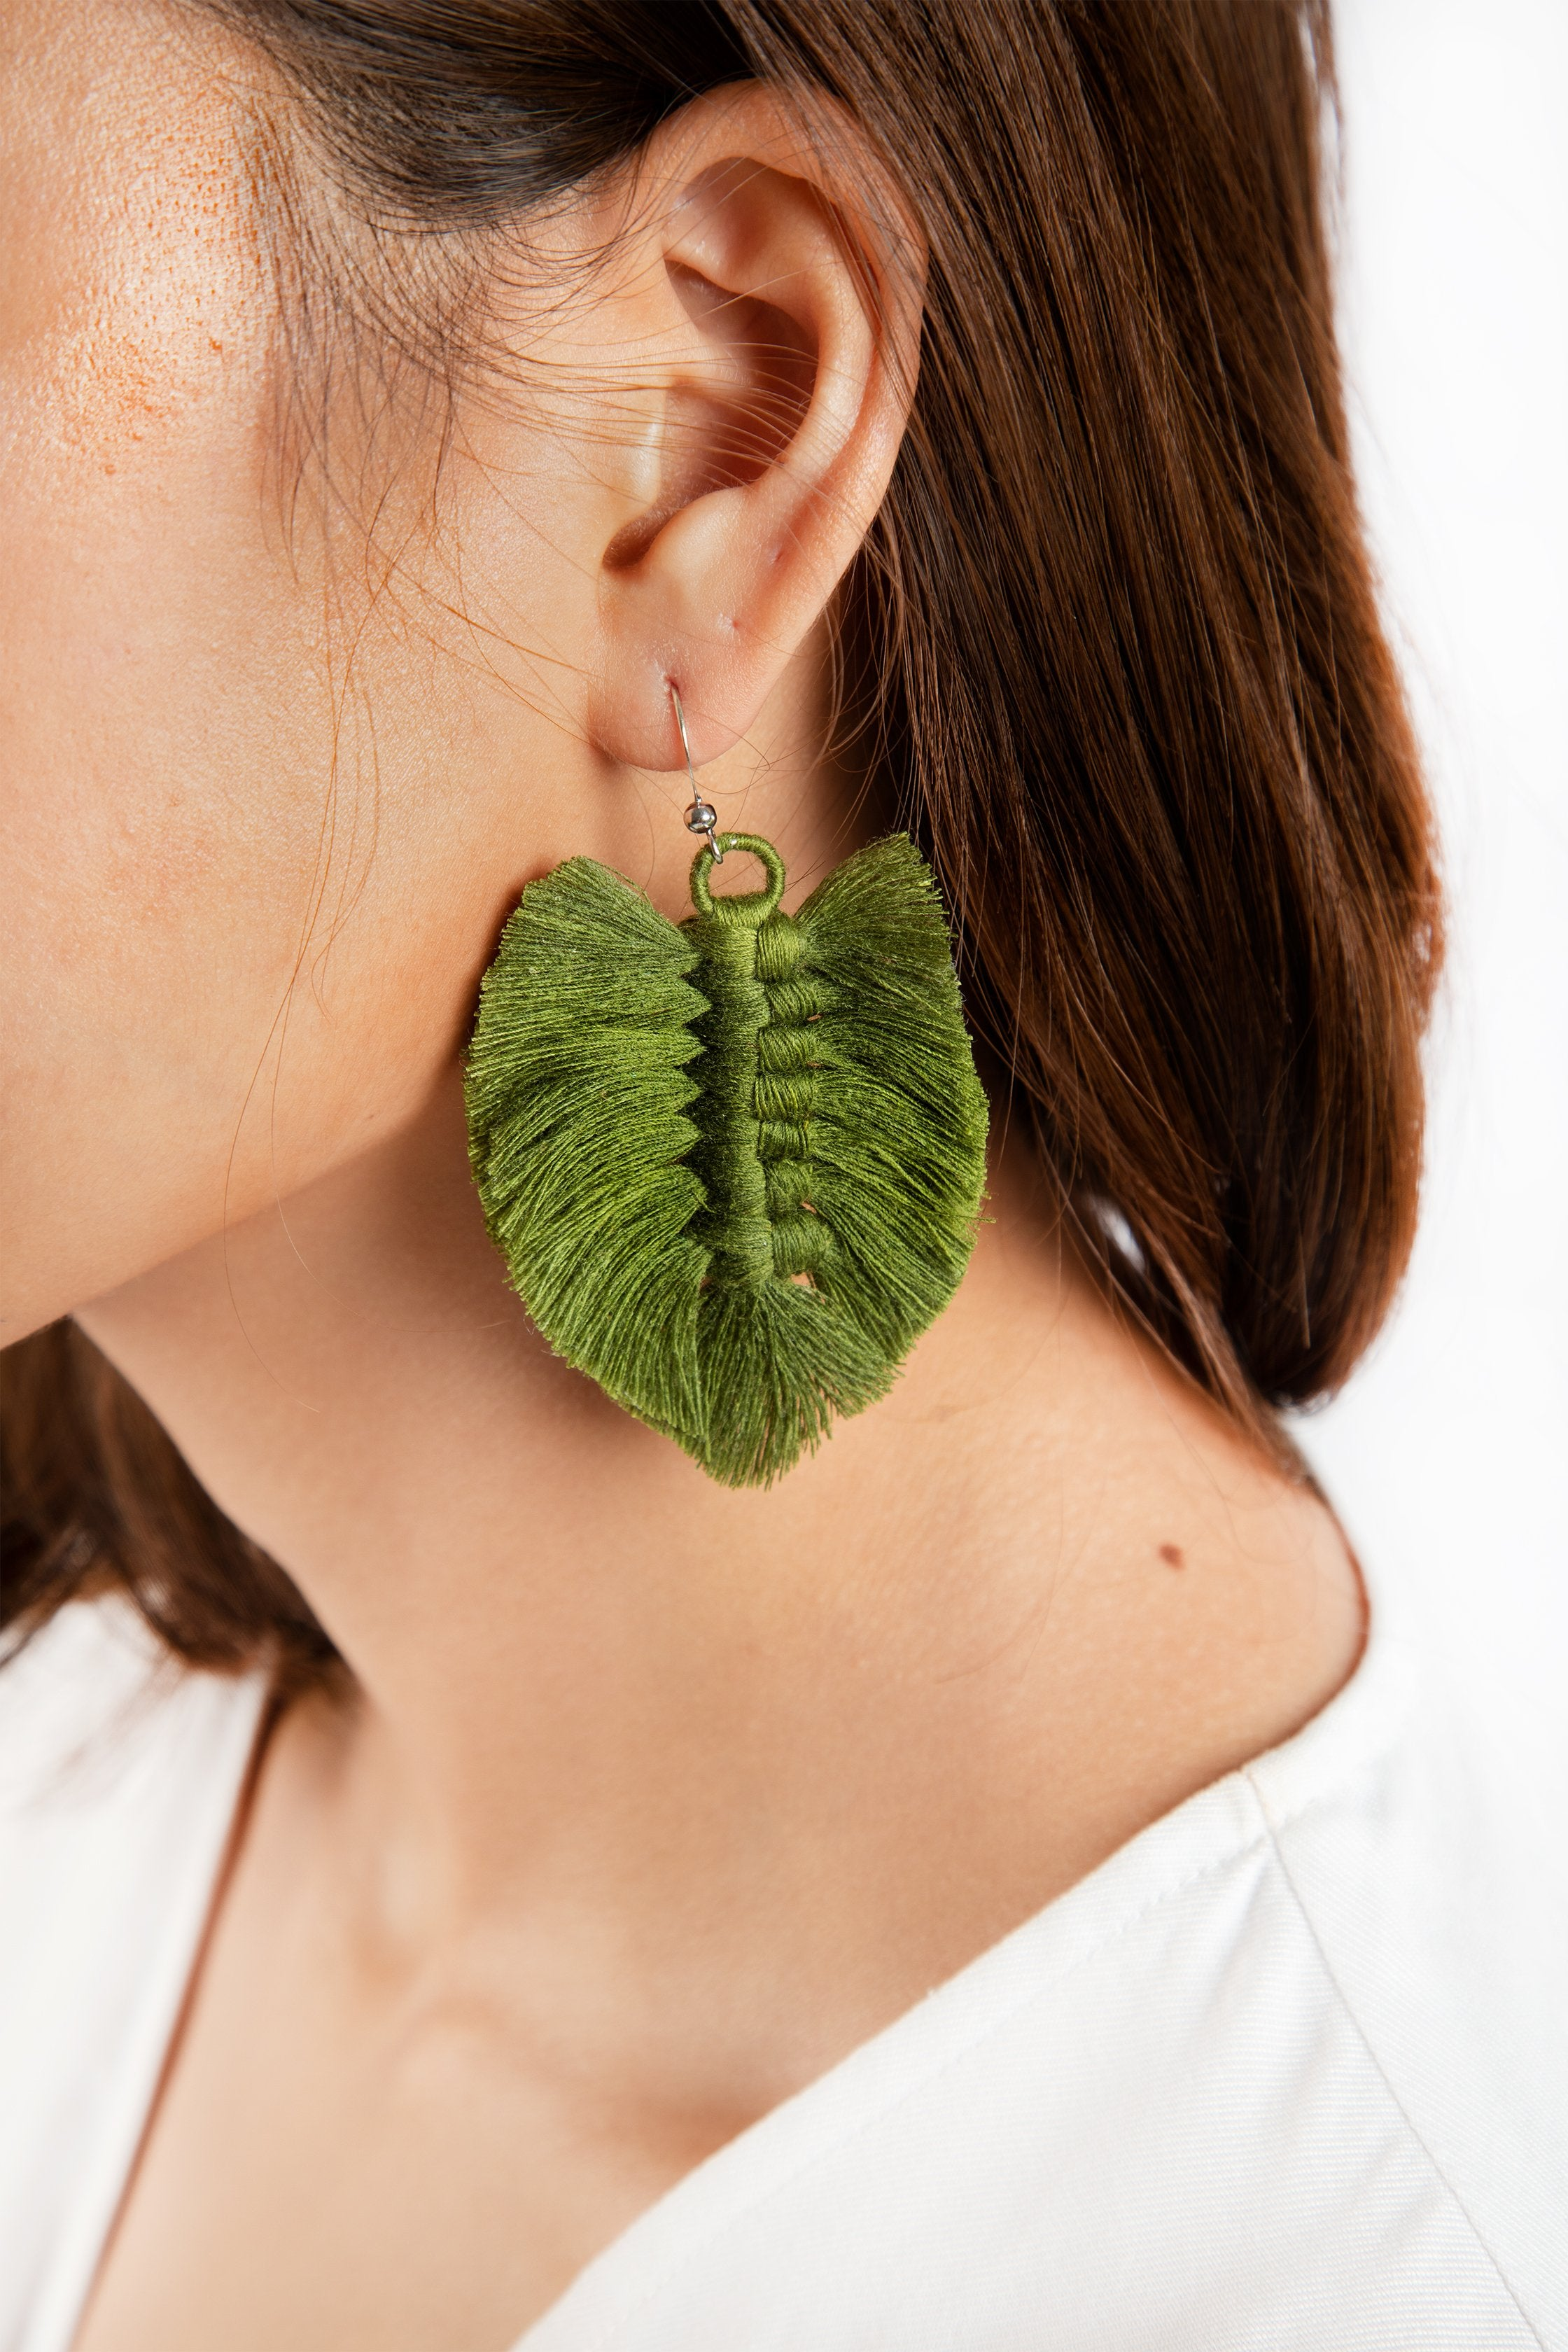 Sandar Leaf Earrings - Moss Green - Our Barehands